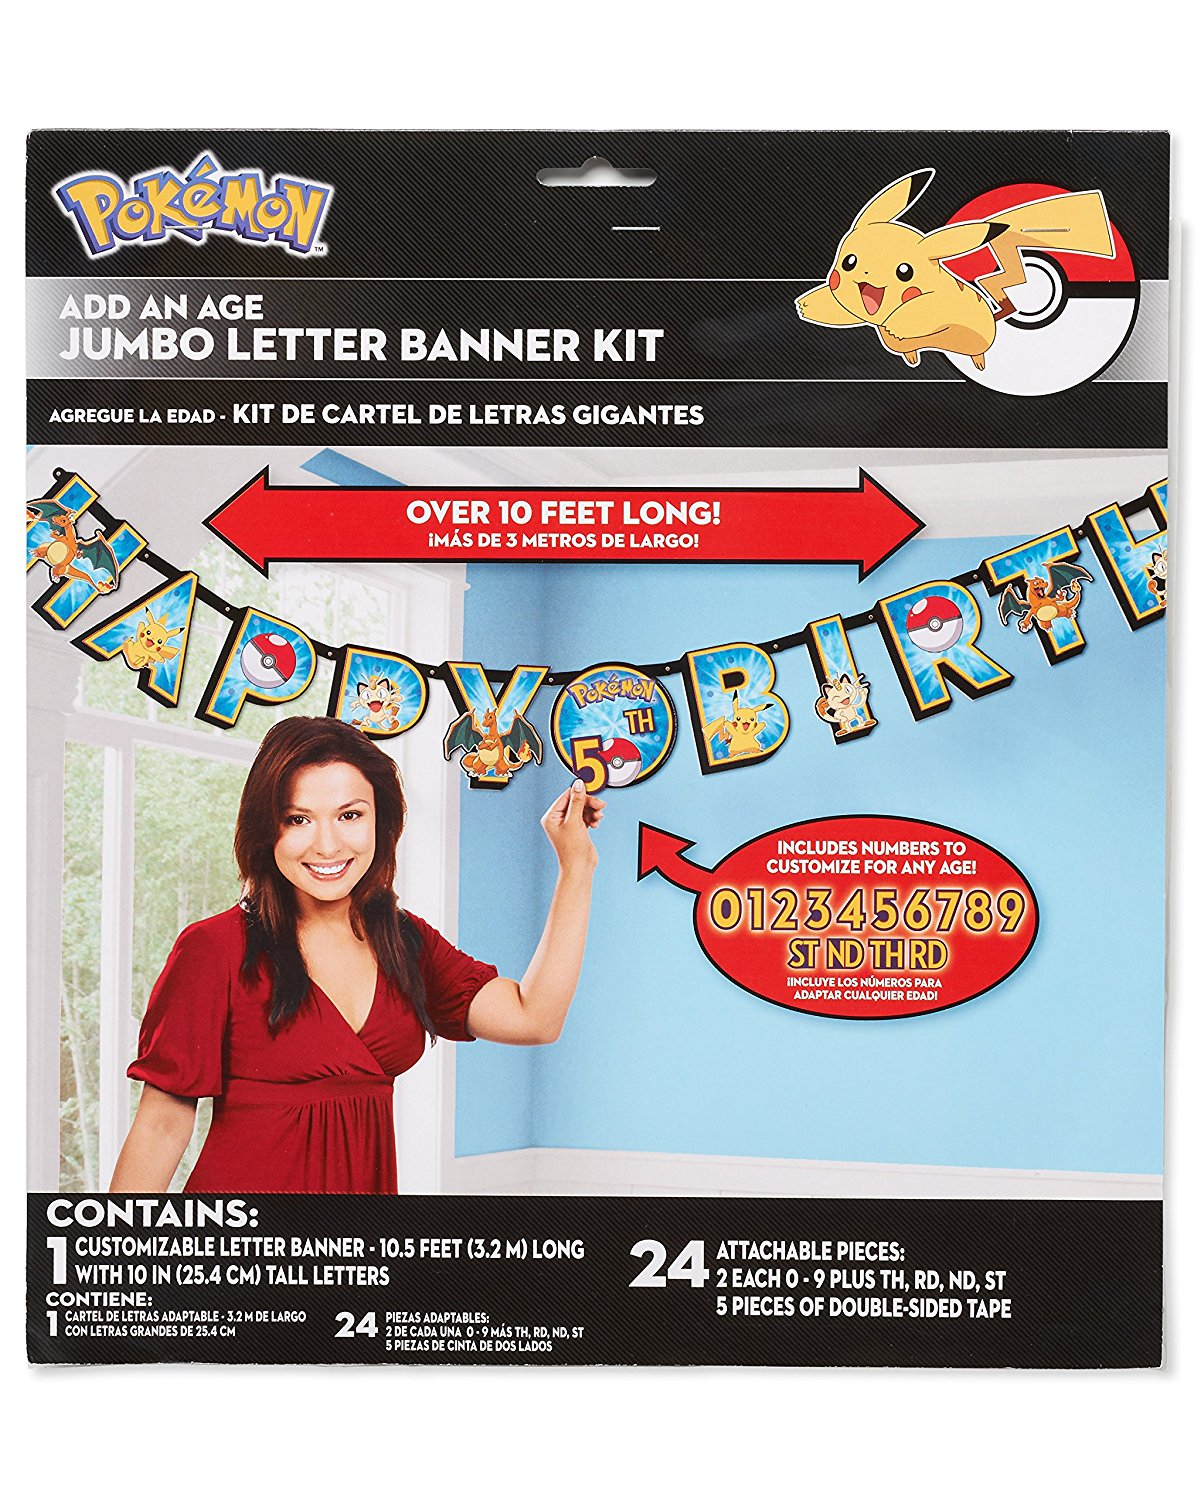 American greetings pokemon add an age birthday party banner american greetings kristyandbryce Image collections